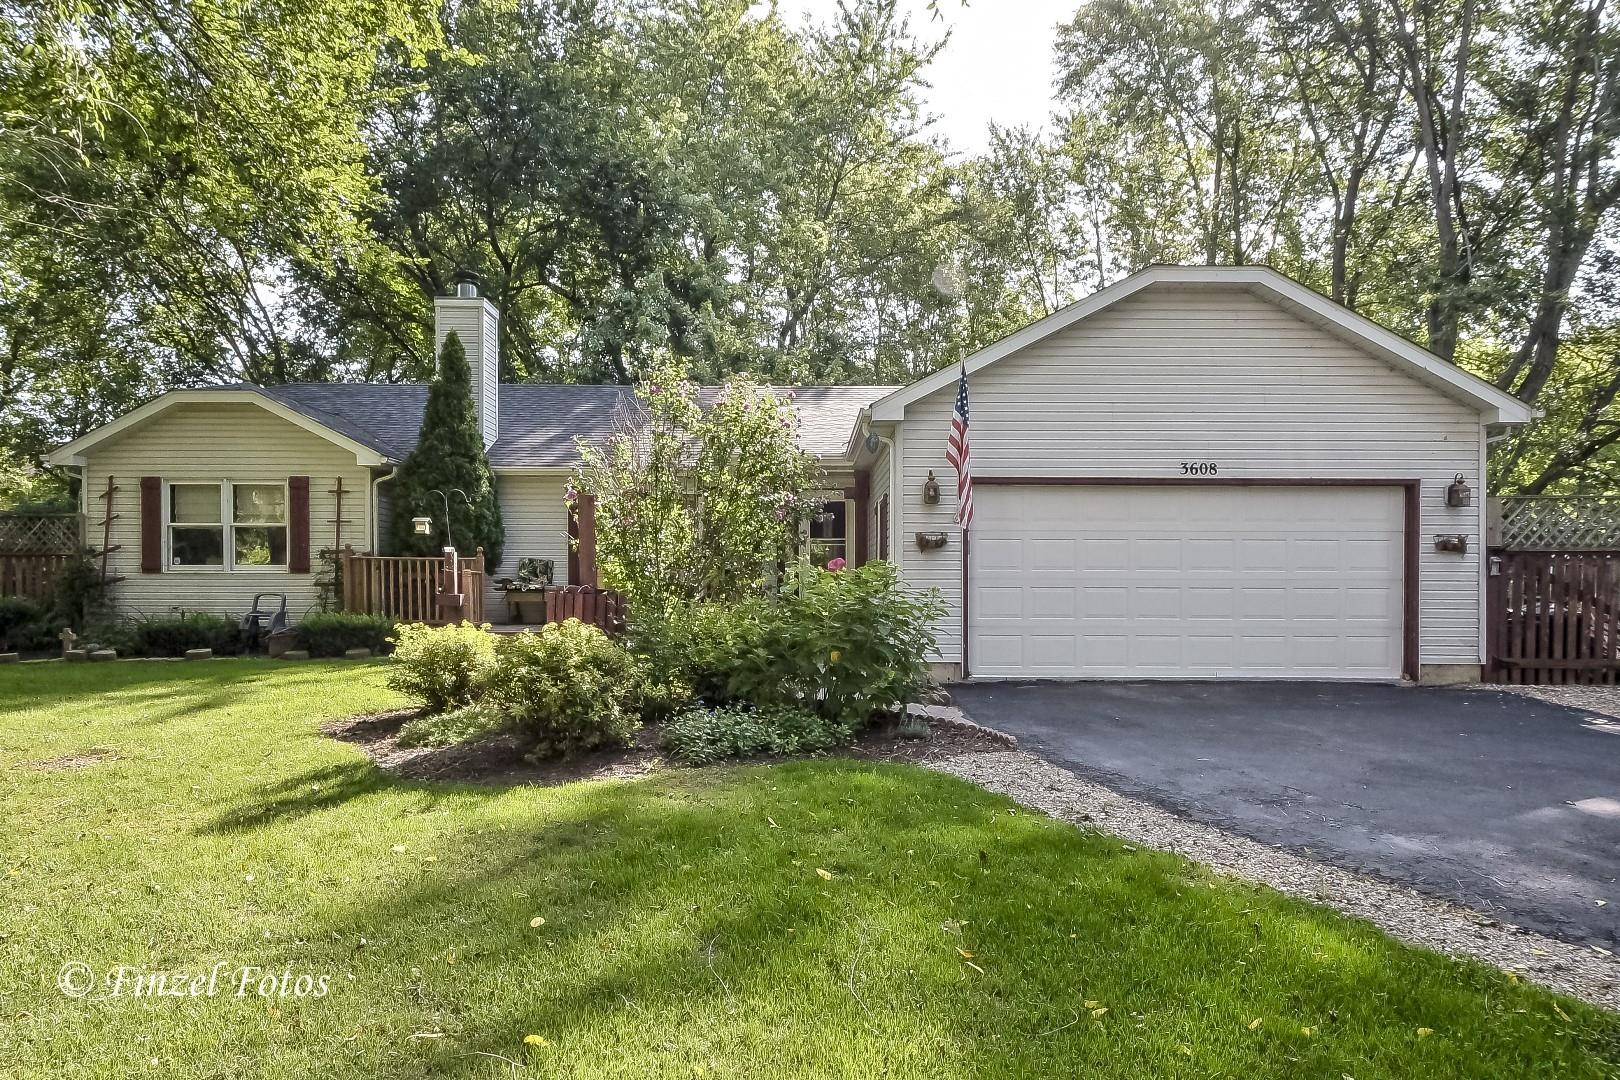 3608 E Wonder Lake Road, Wonder Lake, IL 60097 - #: 10637073